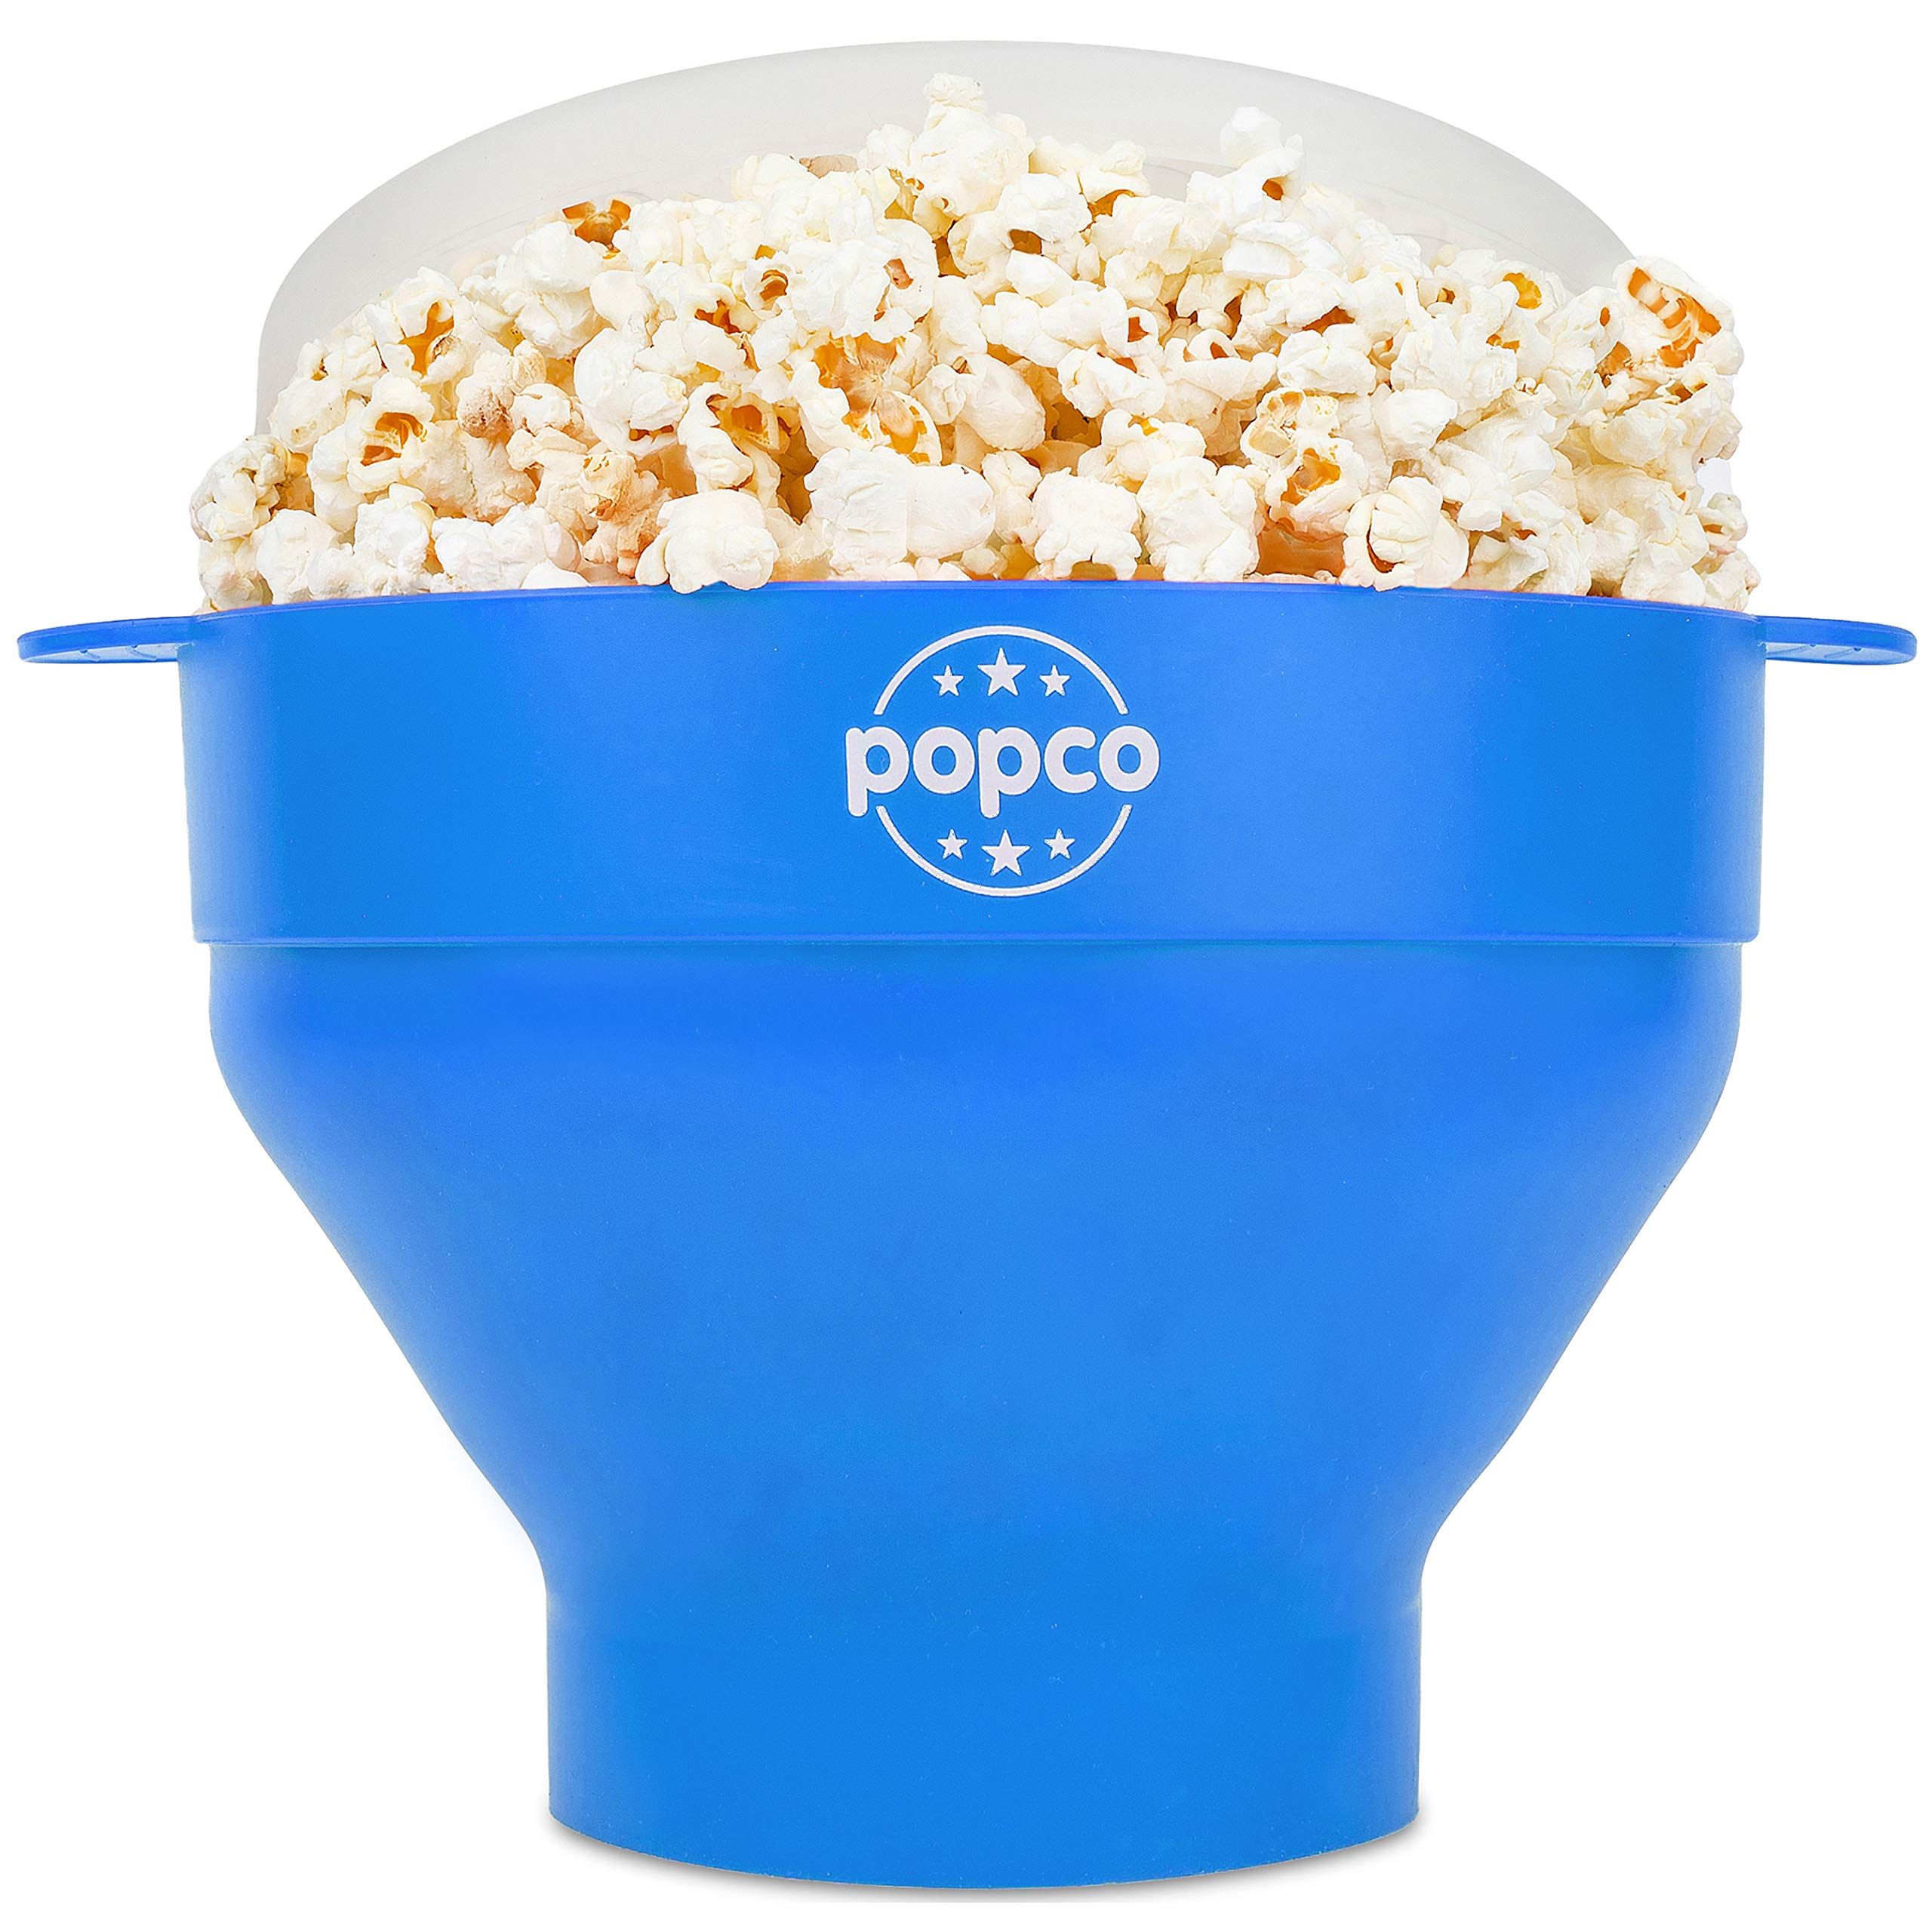 The Original Popco Silicone Microwave Popcorn Popper with Handles, Silicone Popcorn Maker, Collapsible Bowl Bpa Free and Dishwasher Safe - 10 Colors Available (Light Blue) by POPCO